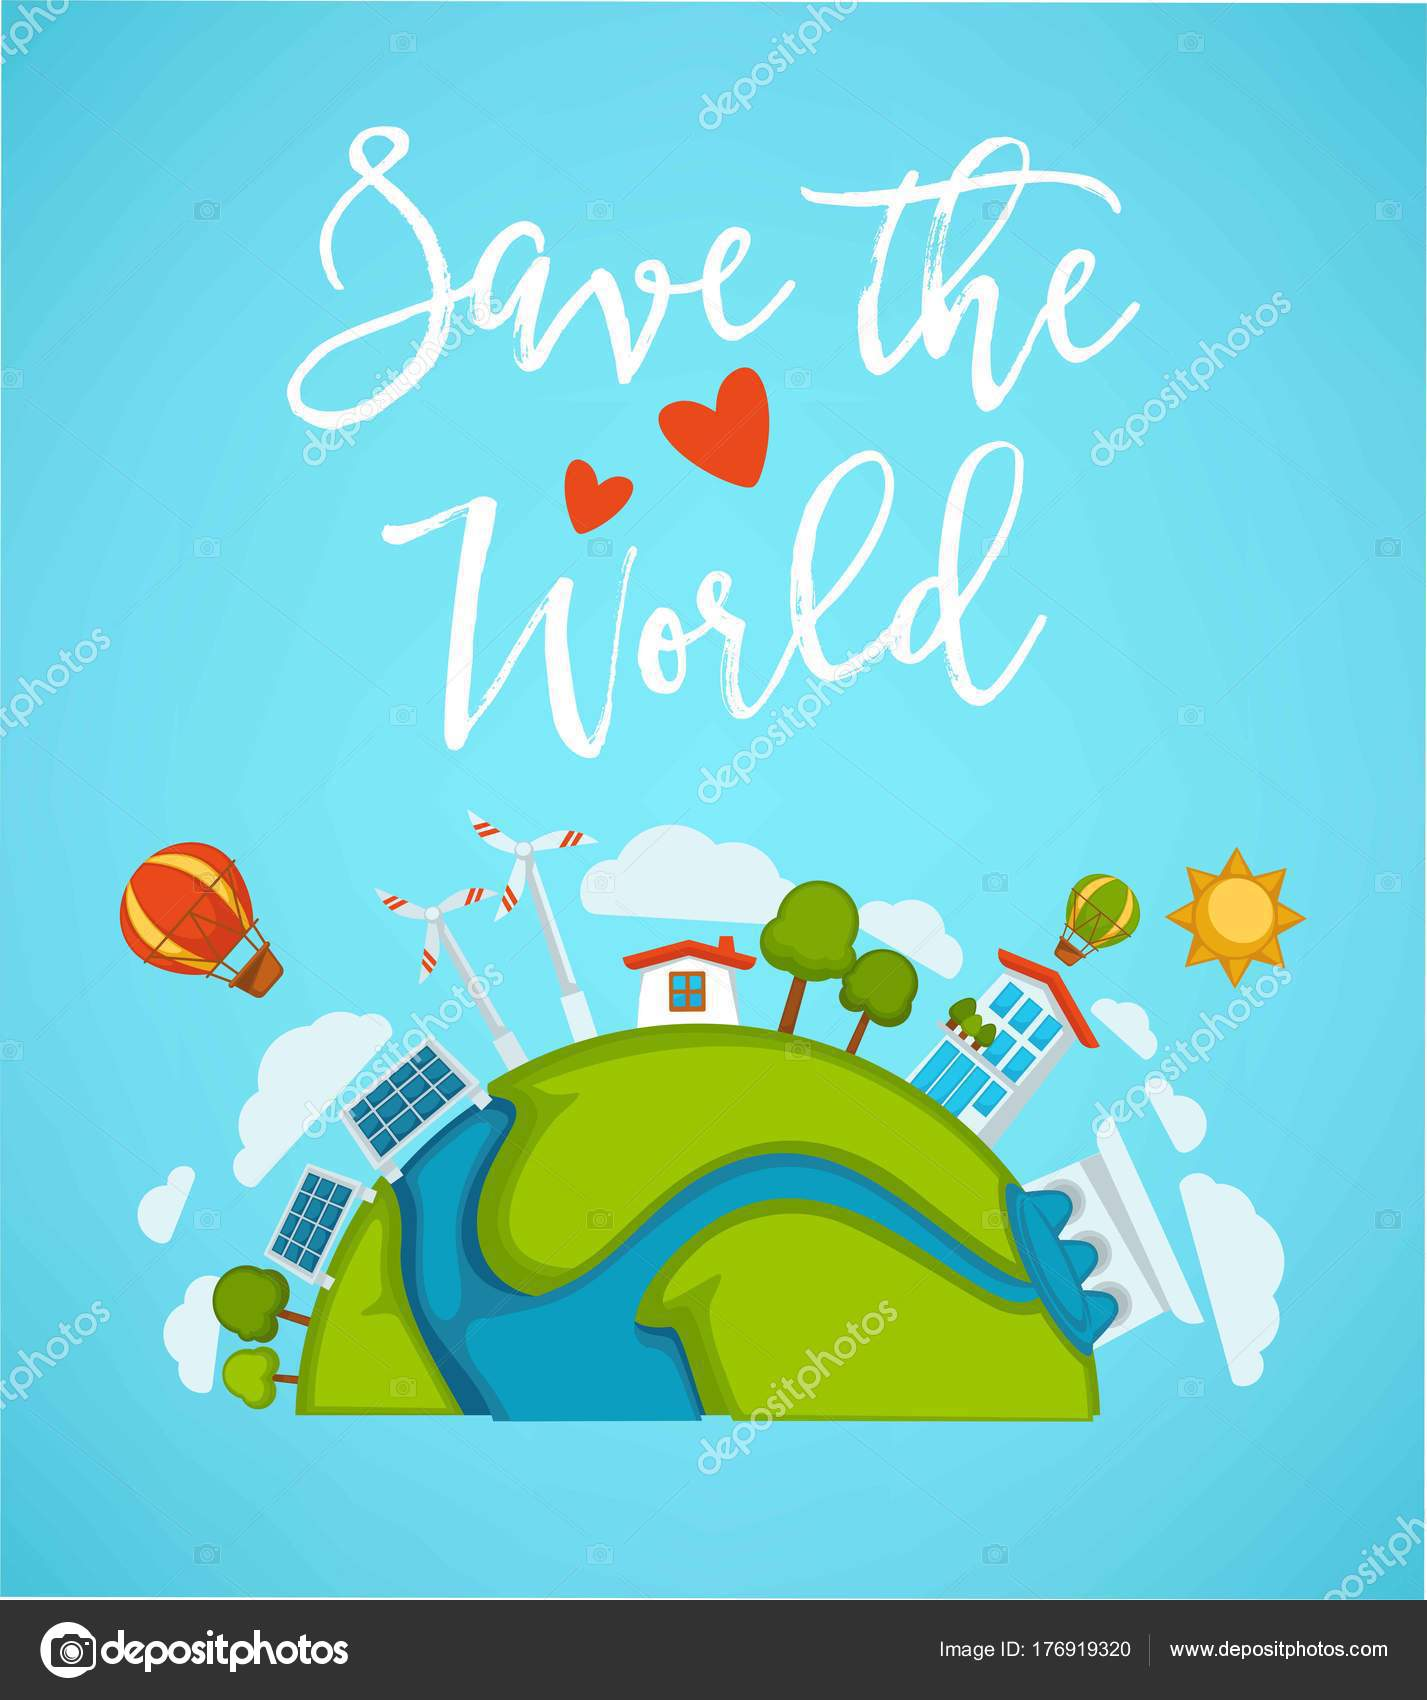 Save World Planet Or Green Earth And Eco Concept Poster Vector Design Of Environment Ecology Energy Saving For Conservation Nature